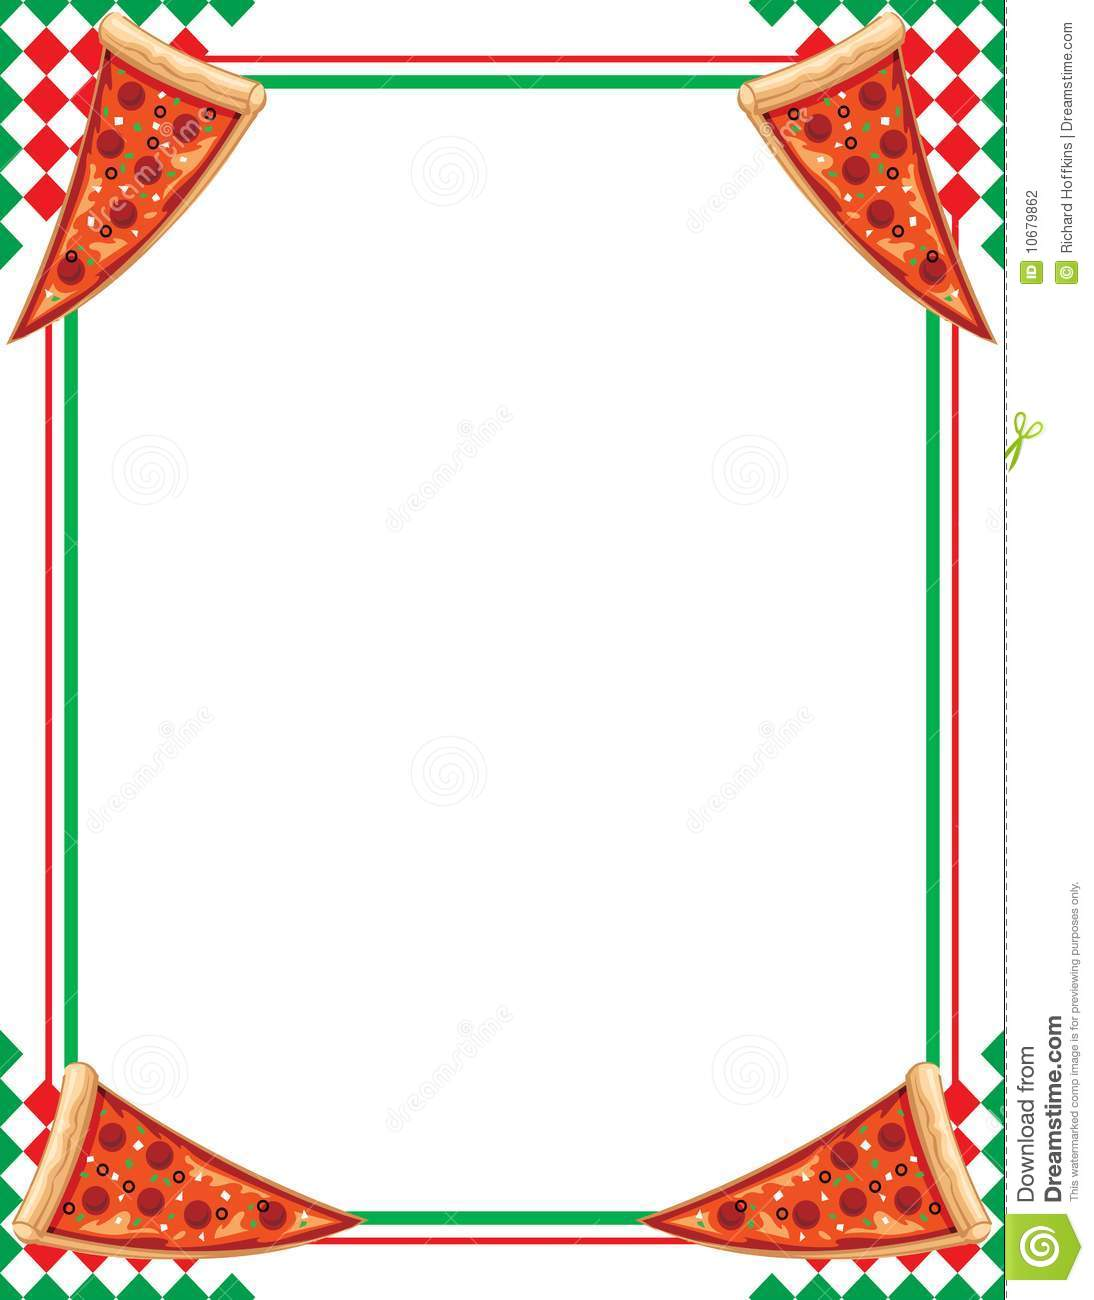 stock photography pizza border image 10679862 pizza slice clipart black and white pizza clipart black and white svg